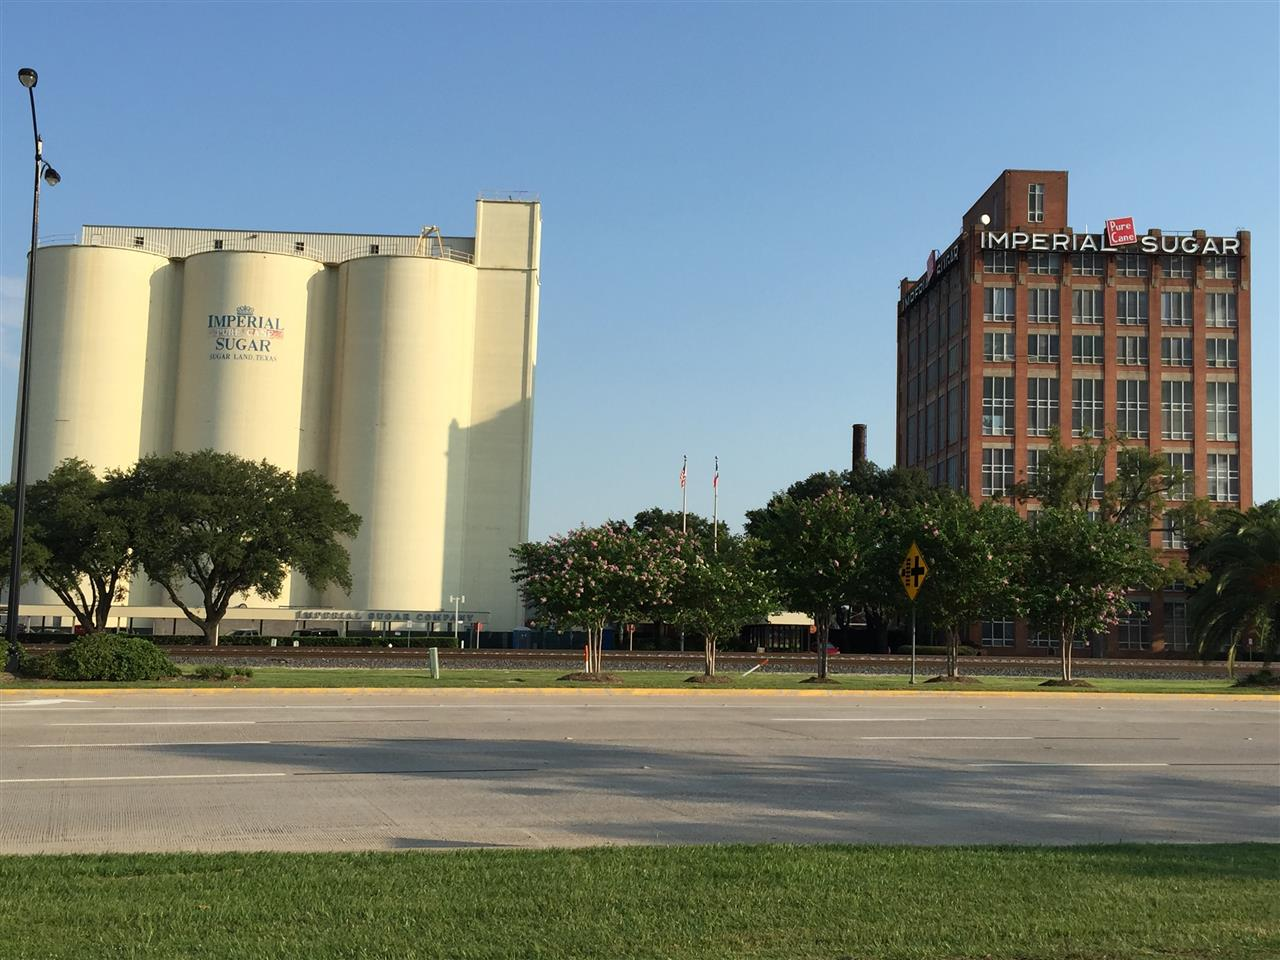 Historic Imperial Sugar factory.